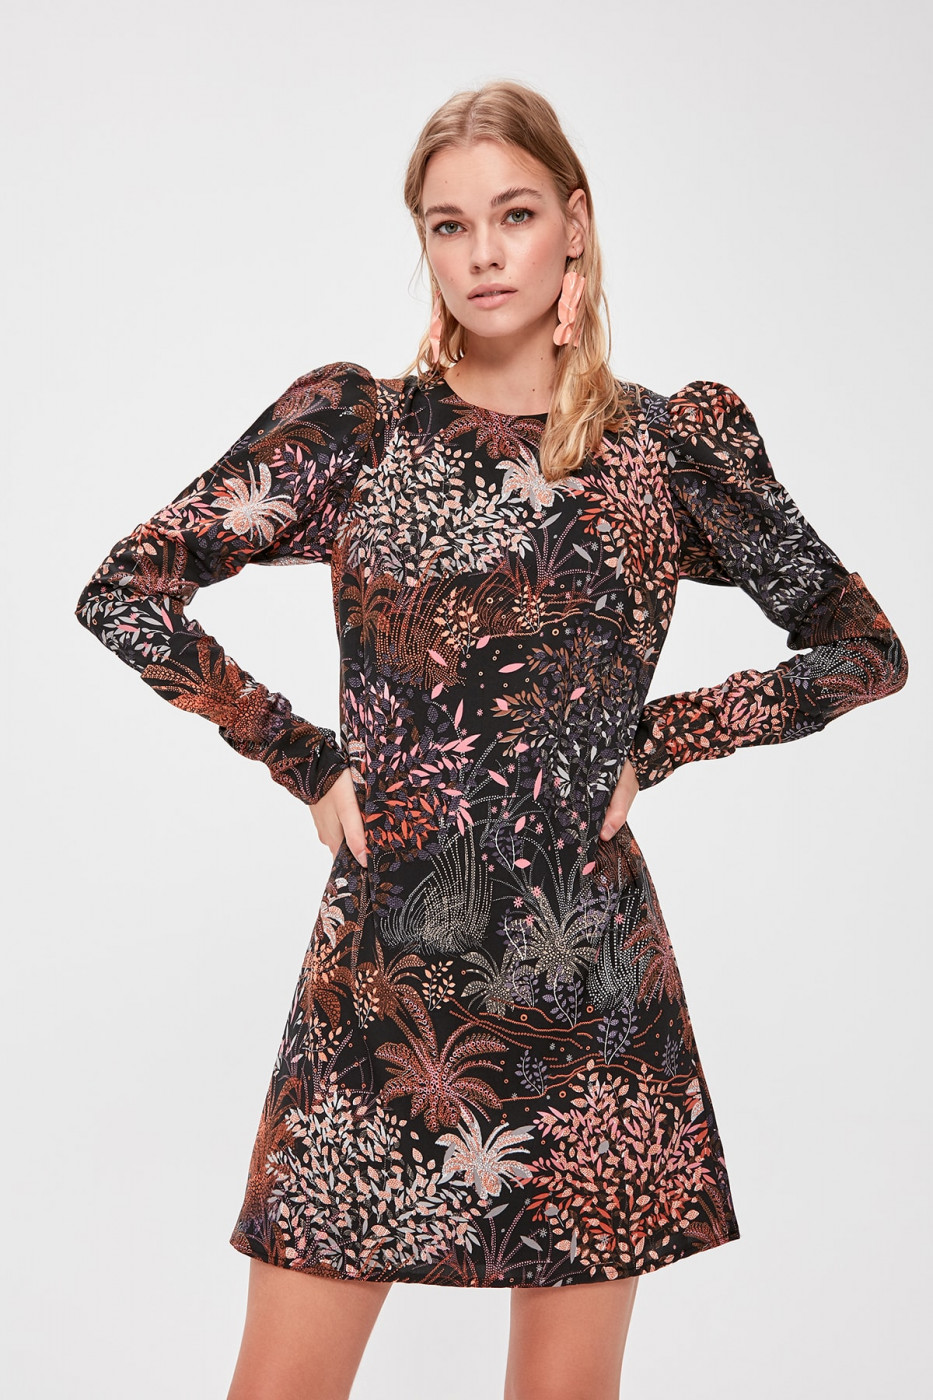 Trendyol Multi-coloured Patterned Dress